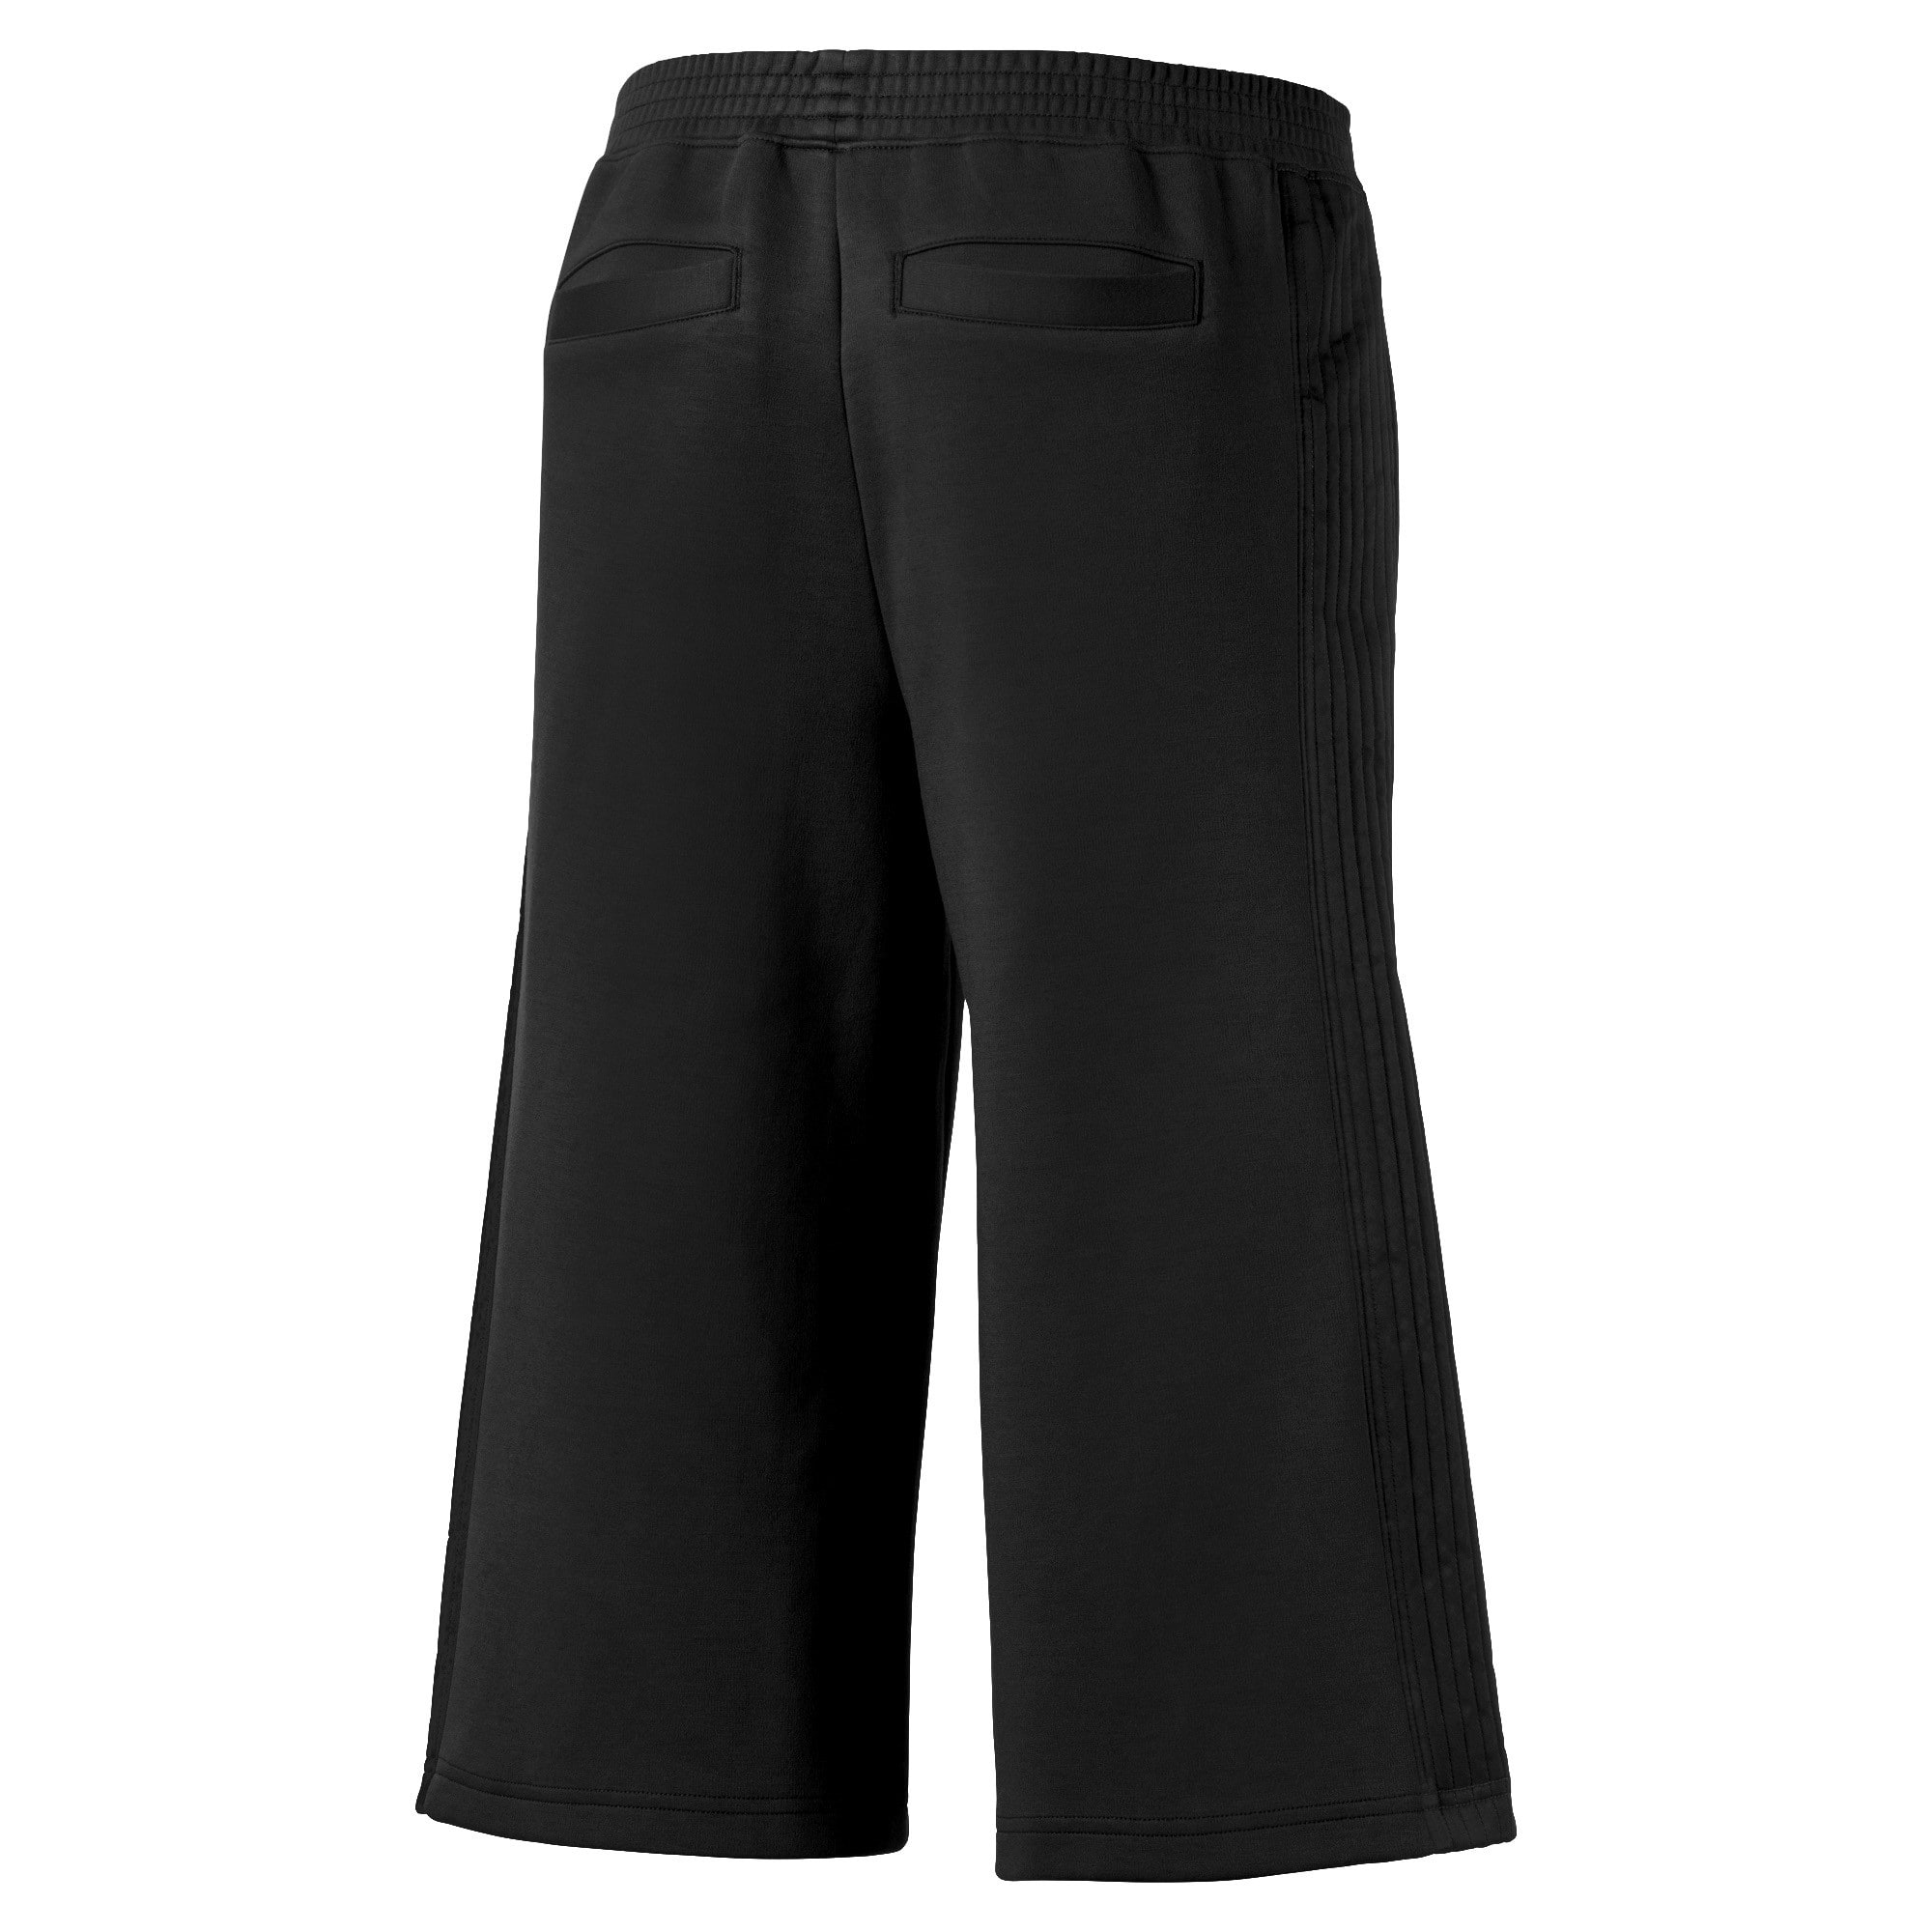 Thumbnail 5 of Evolution Women's Quilted Culottes, Puma Black, medium-IND